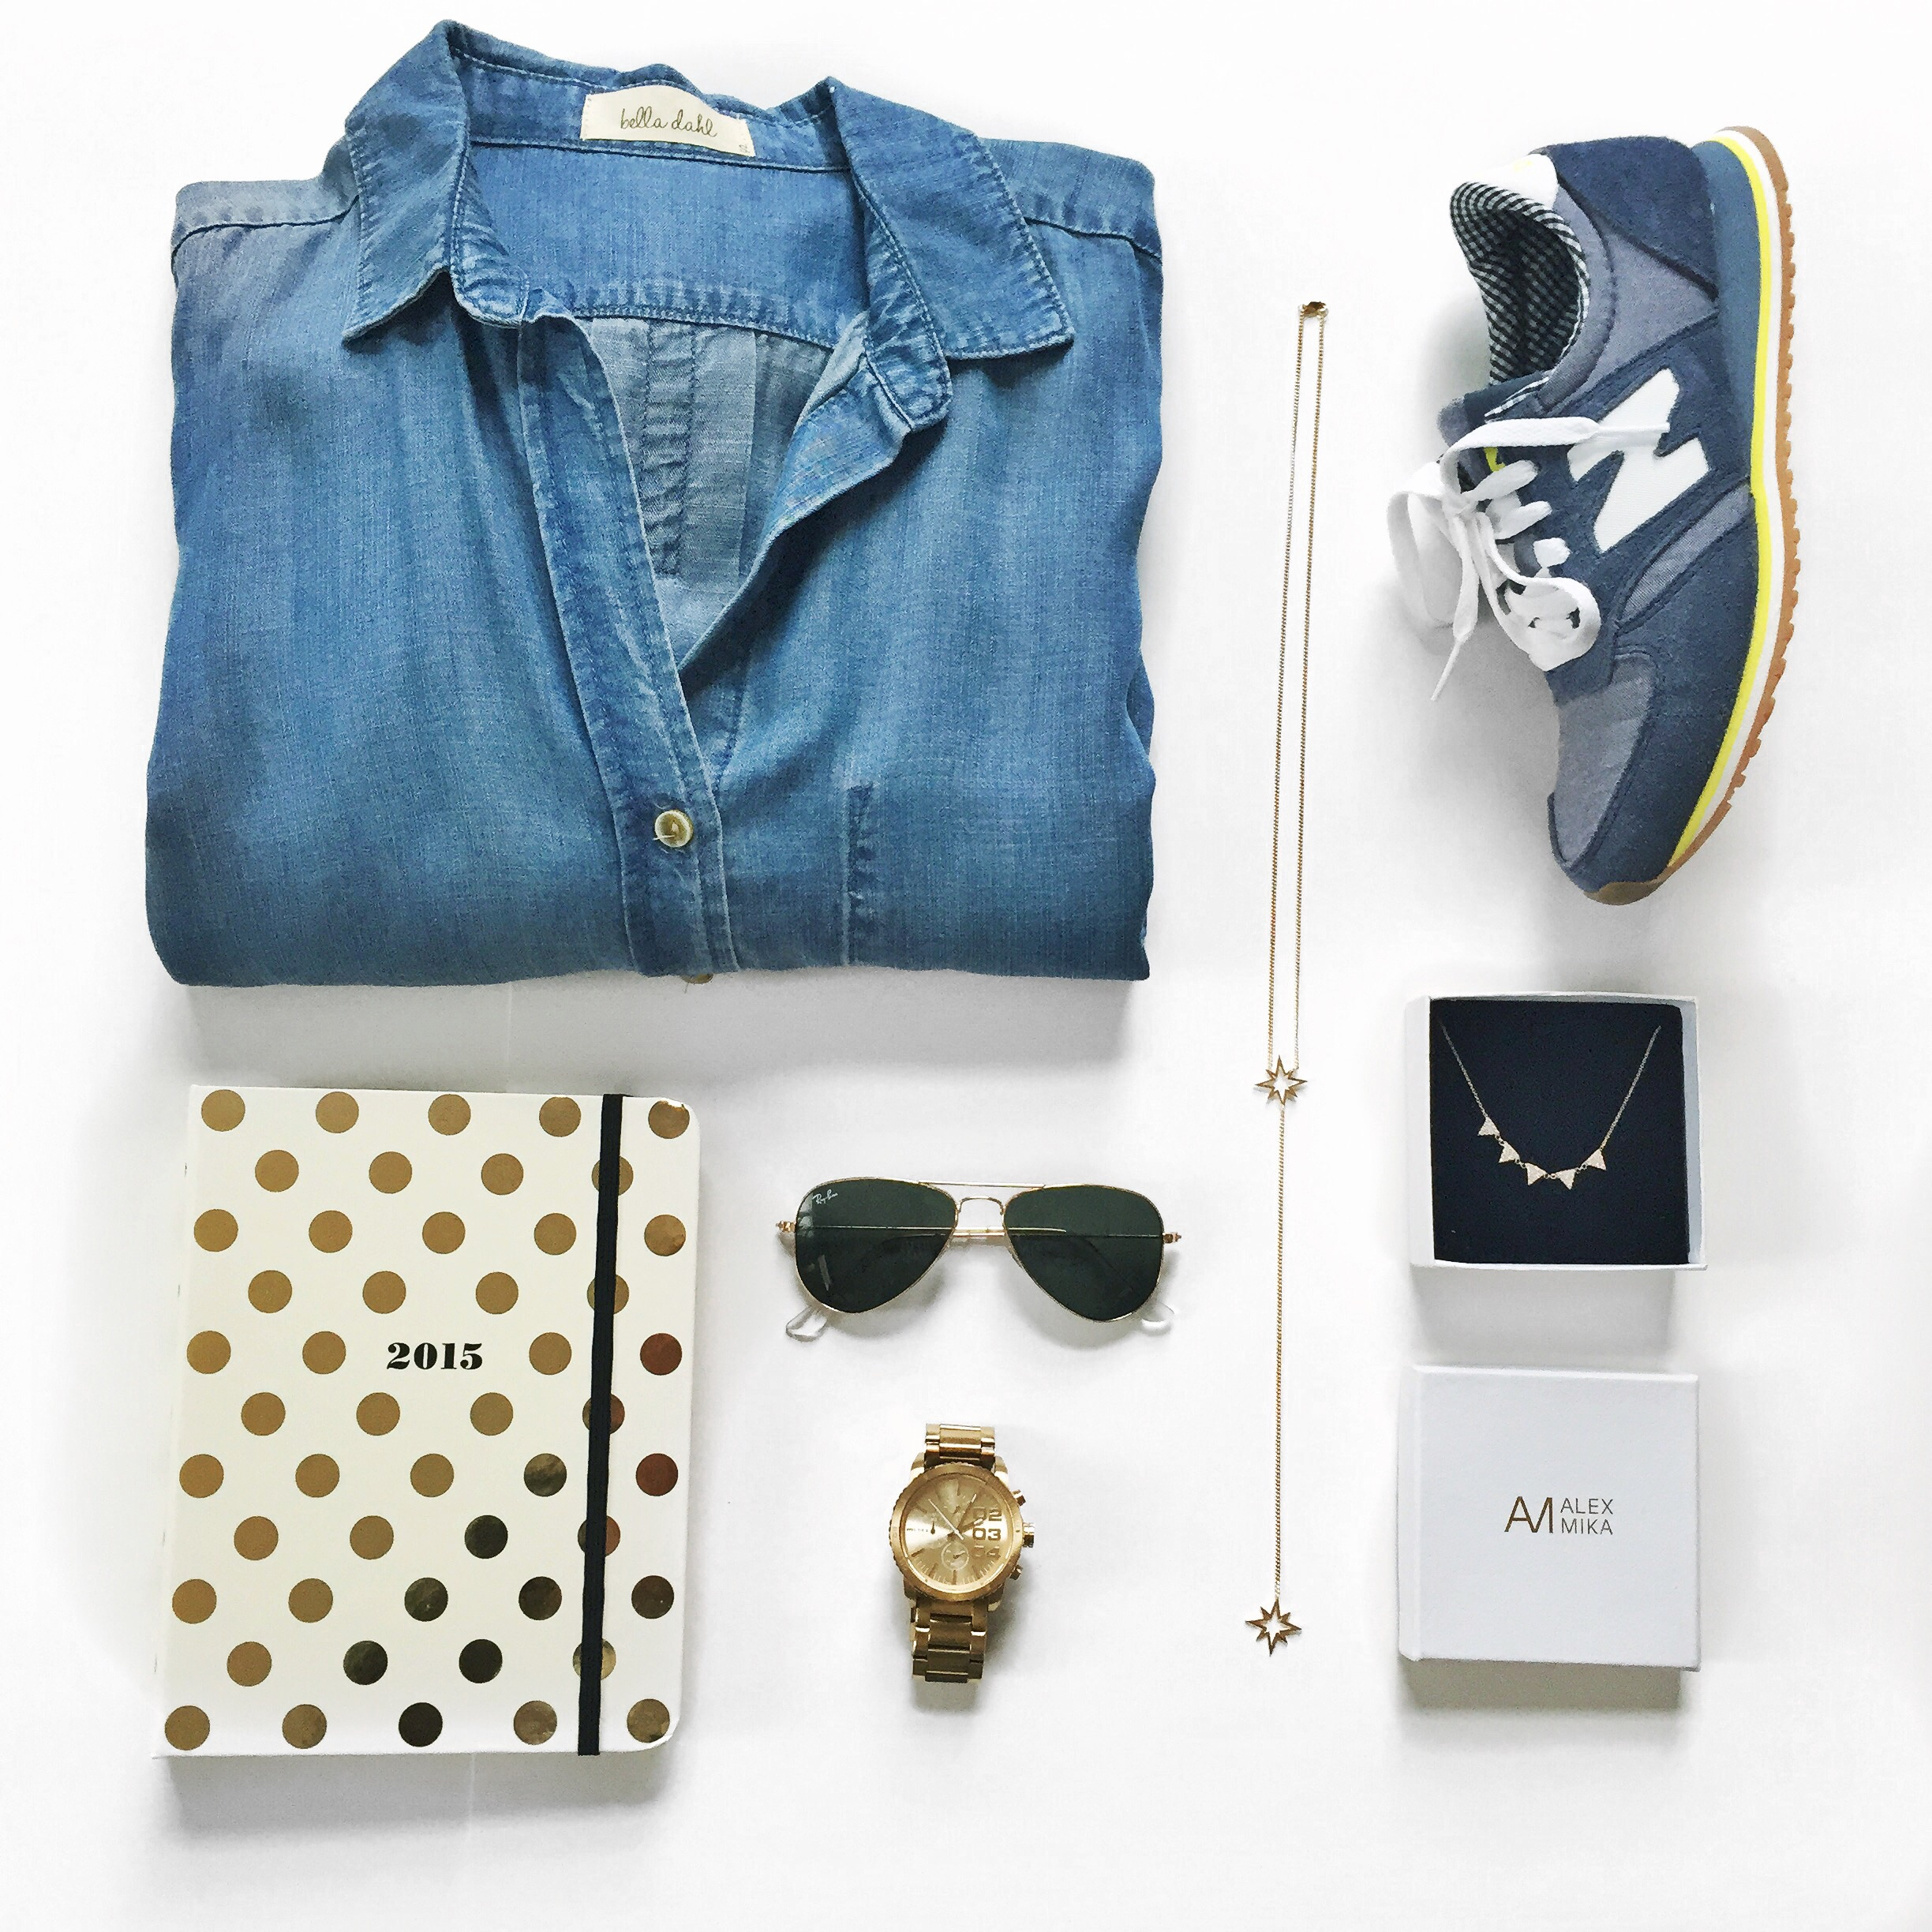 Style flatlay - Bella Dahl chambray top, New Balance 420's, Alex Mika necklace, Ray Ban Sunnies